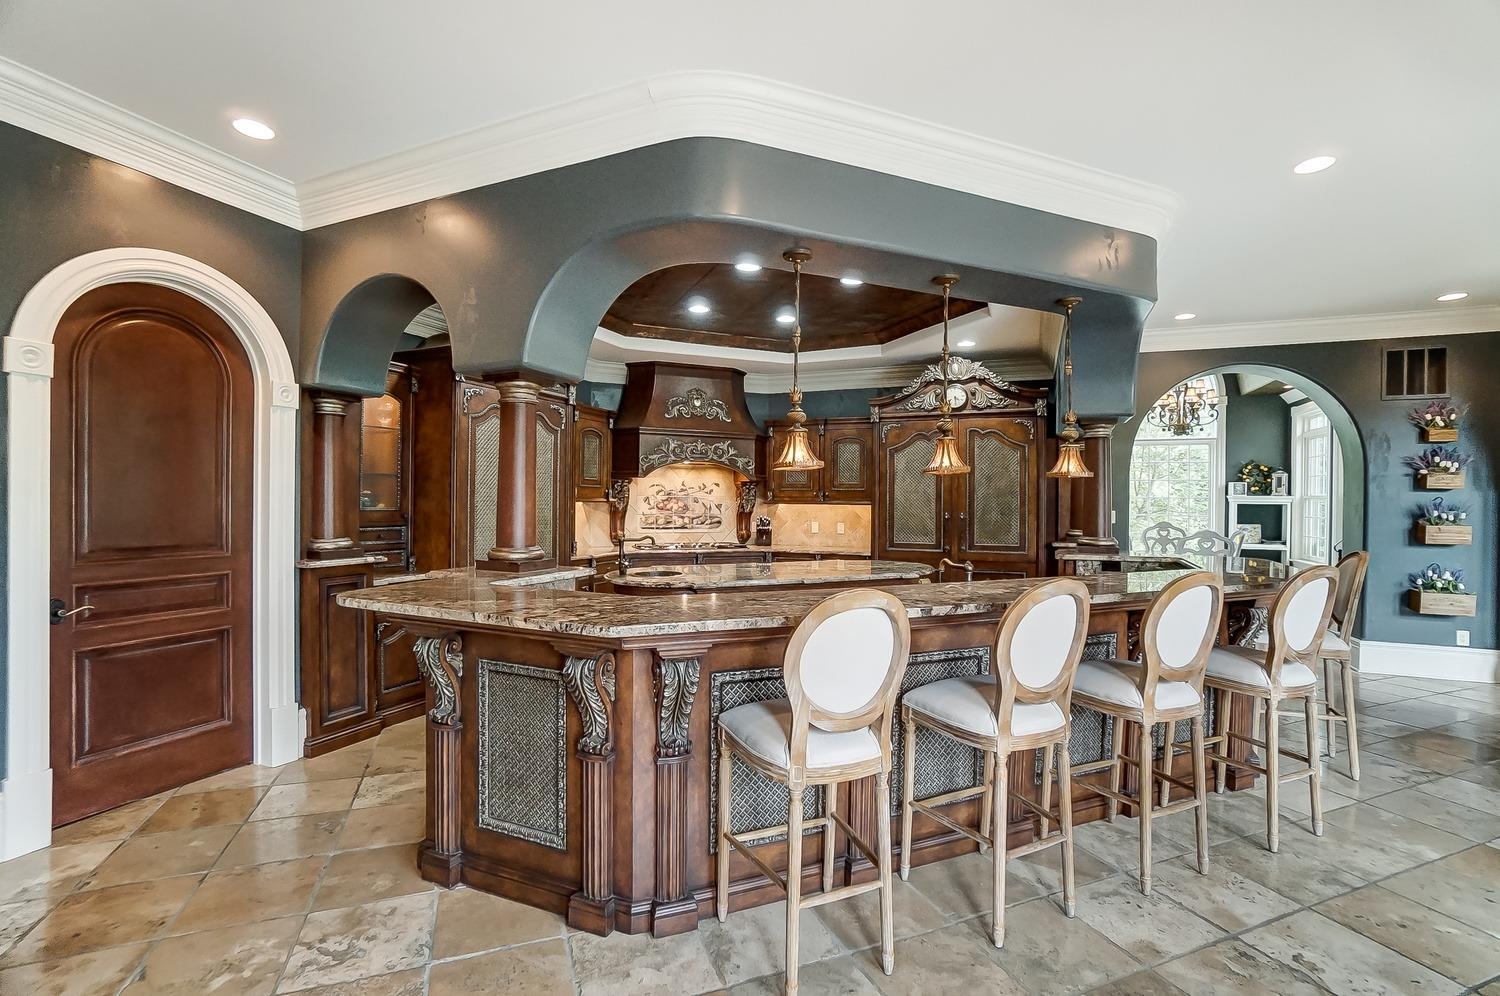 This home features handcrafted European-styled kitchen